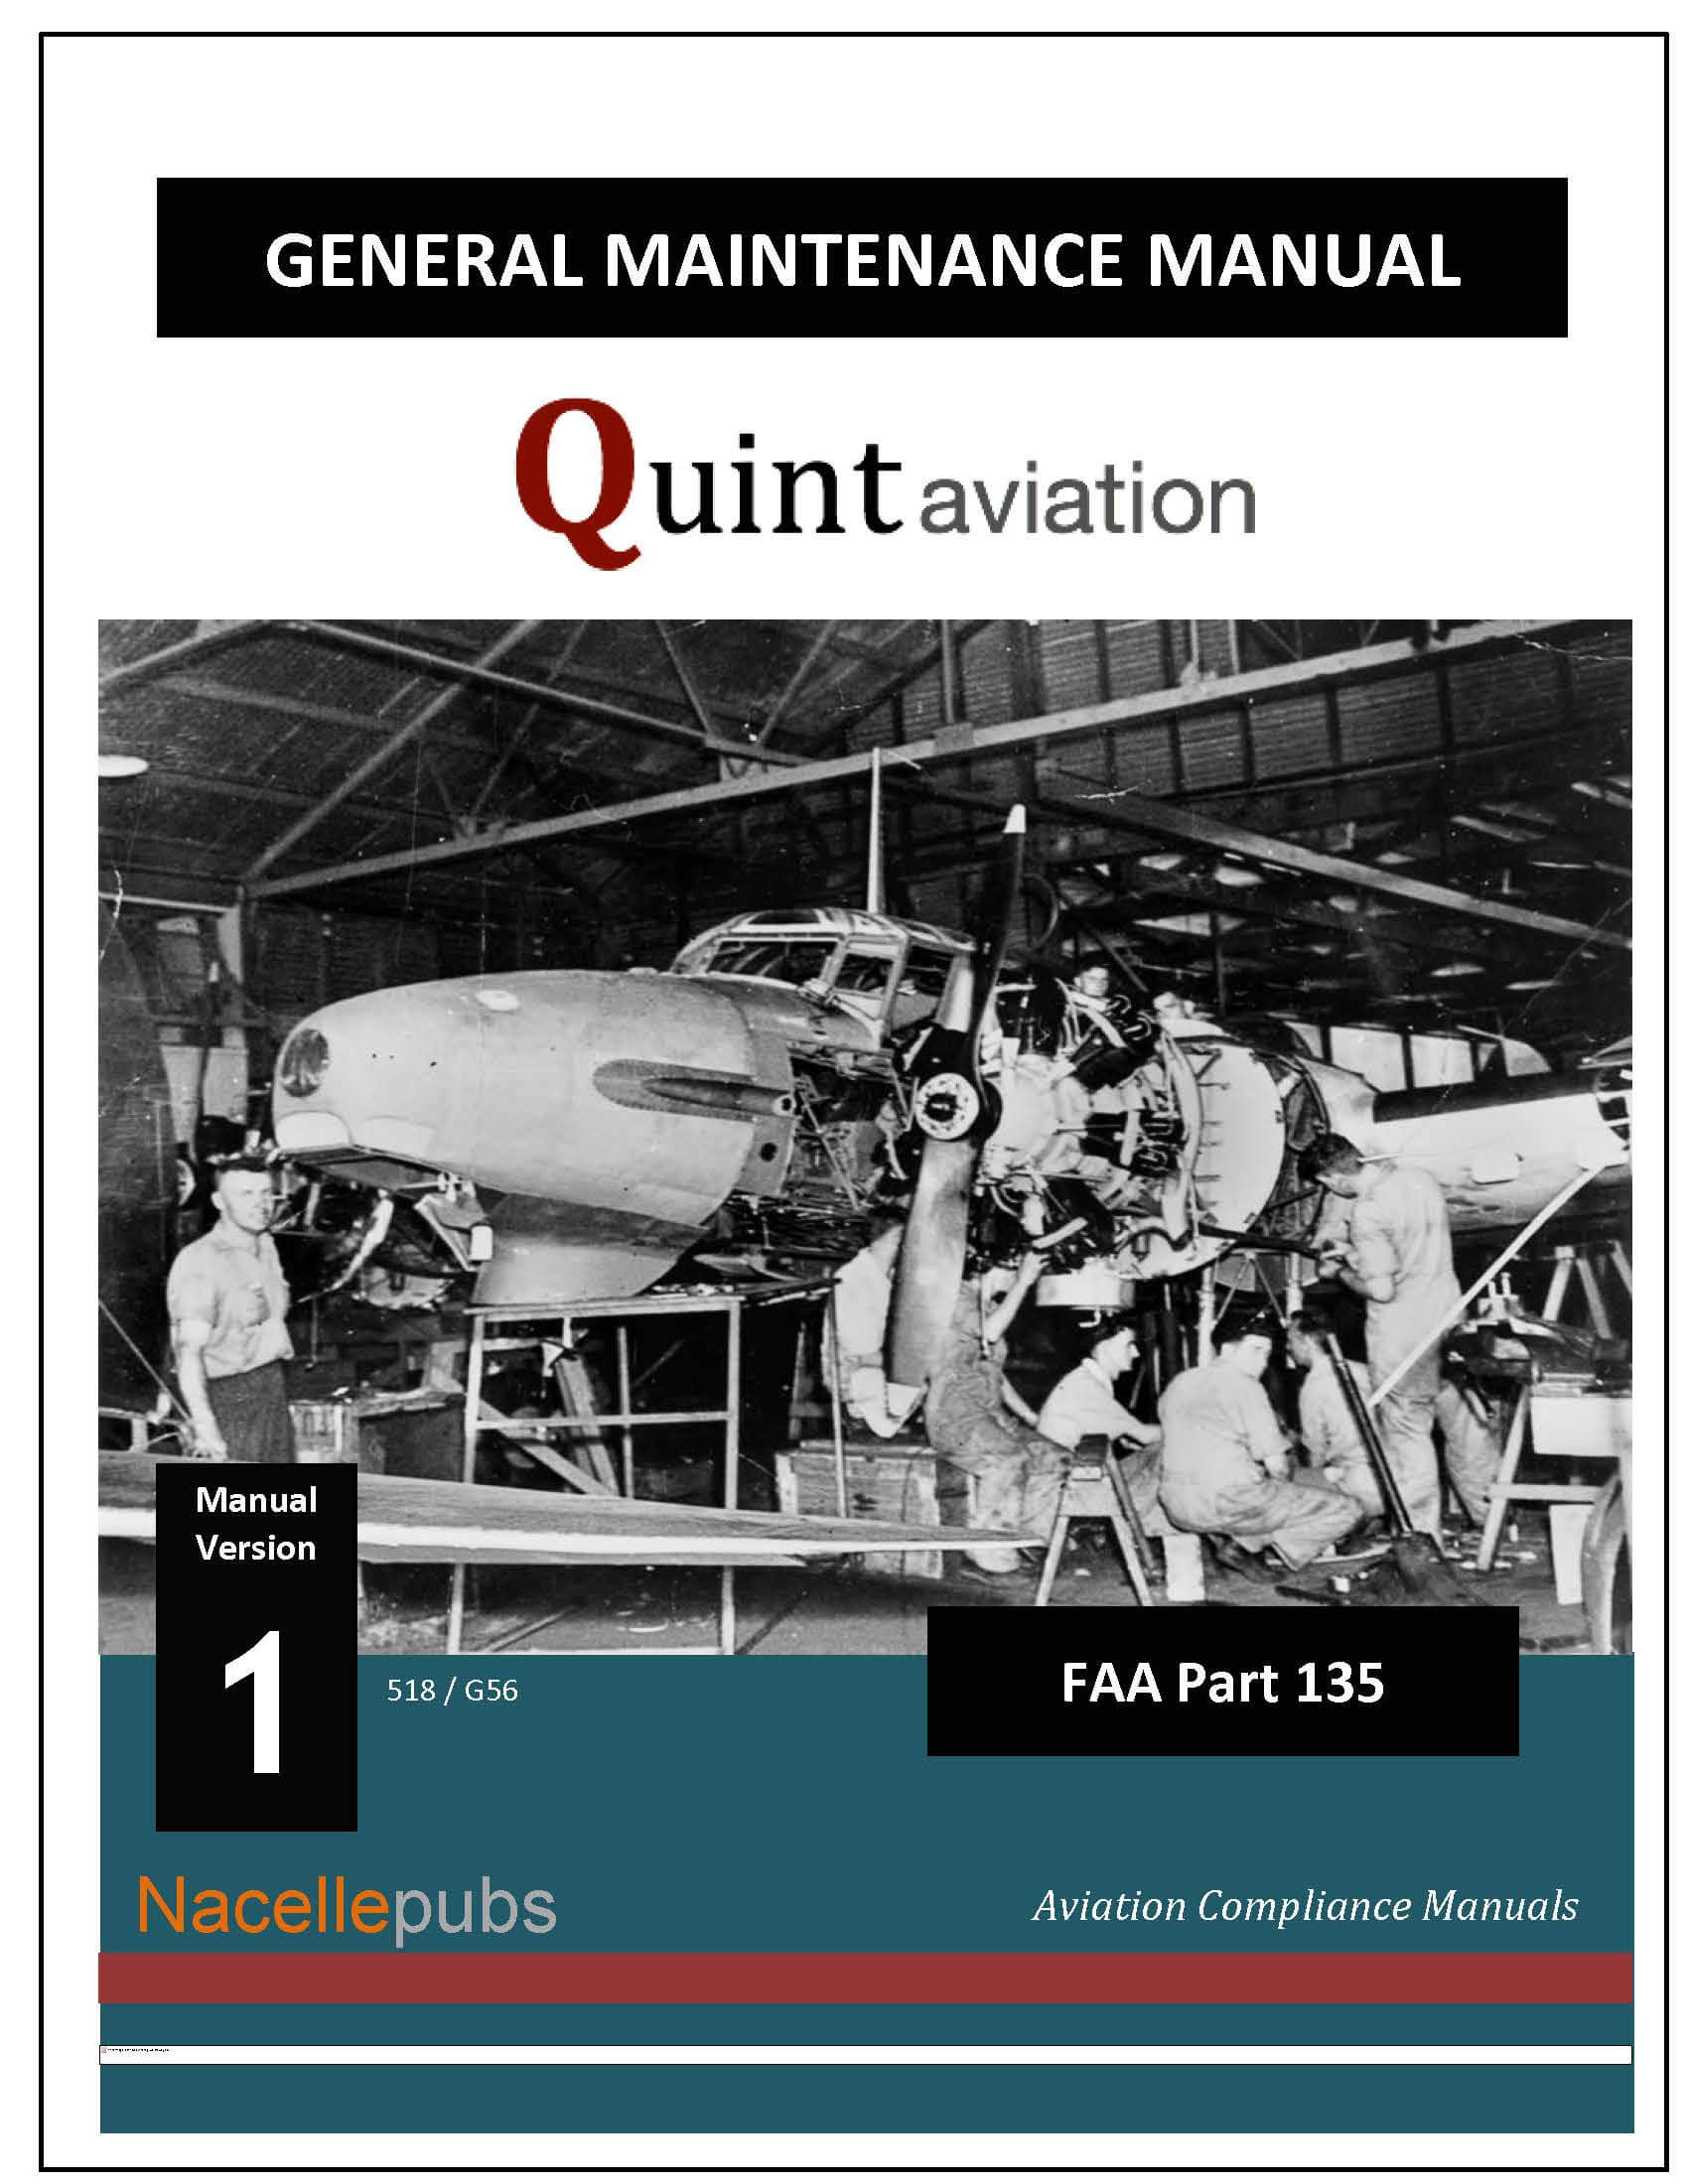 FAA Part 135 General Maintenance Manual (GMM)